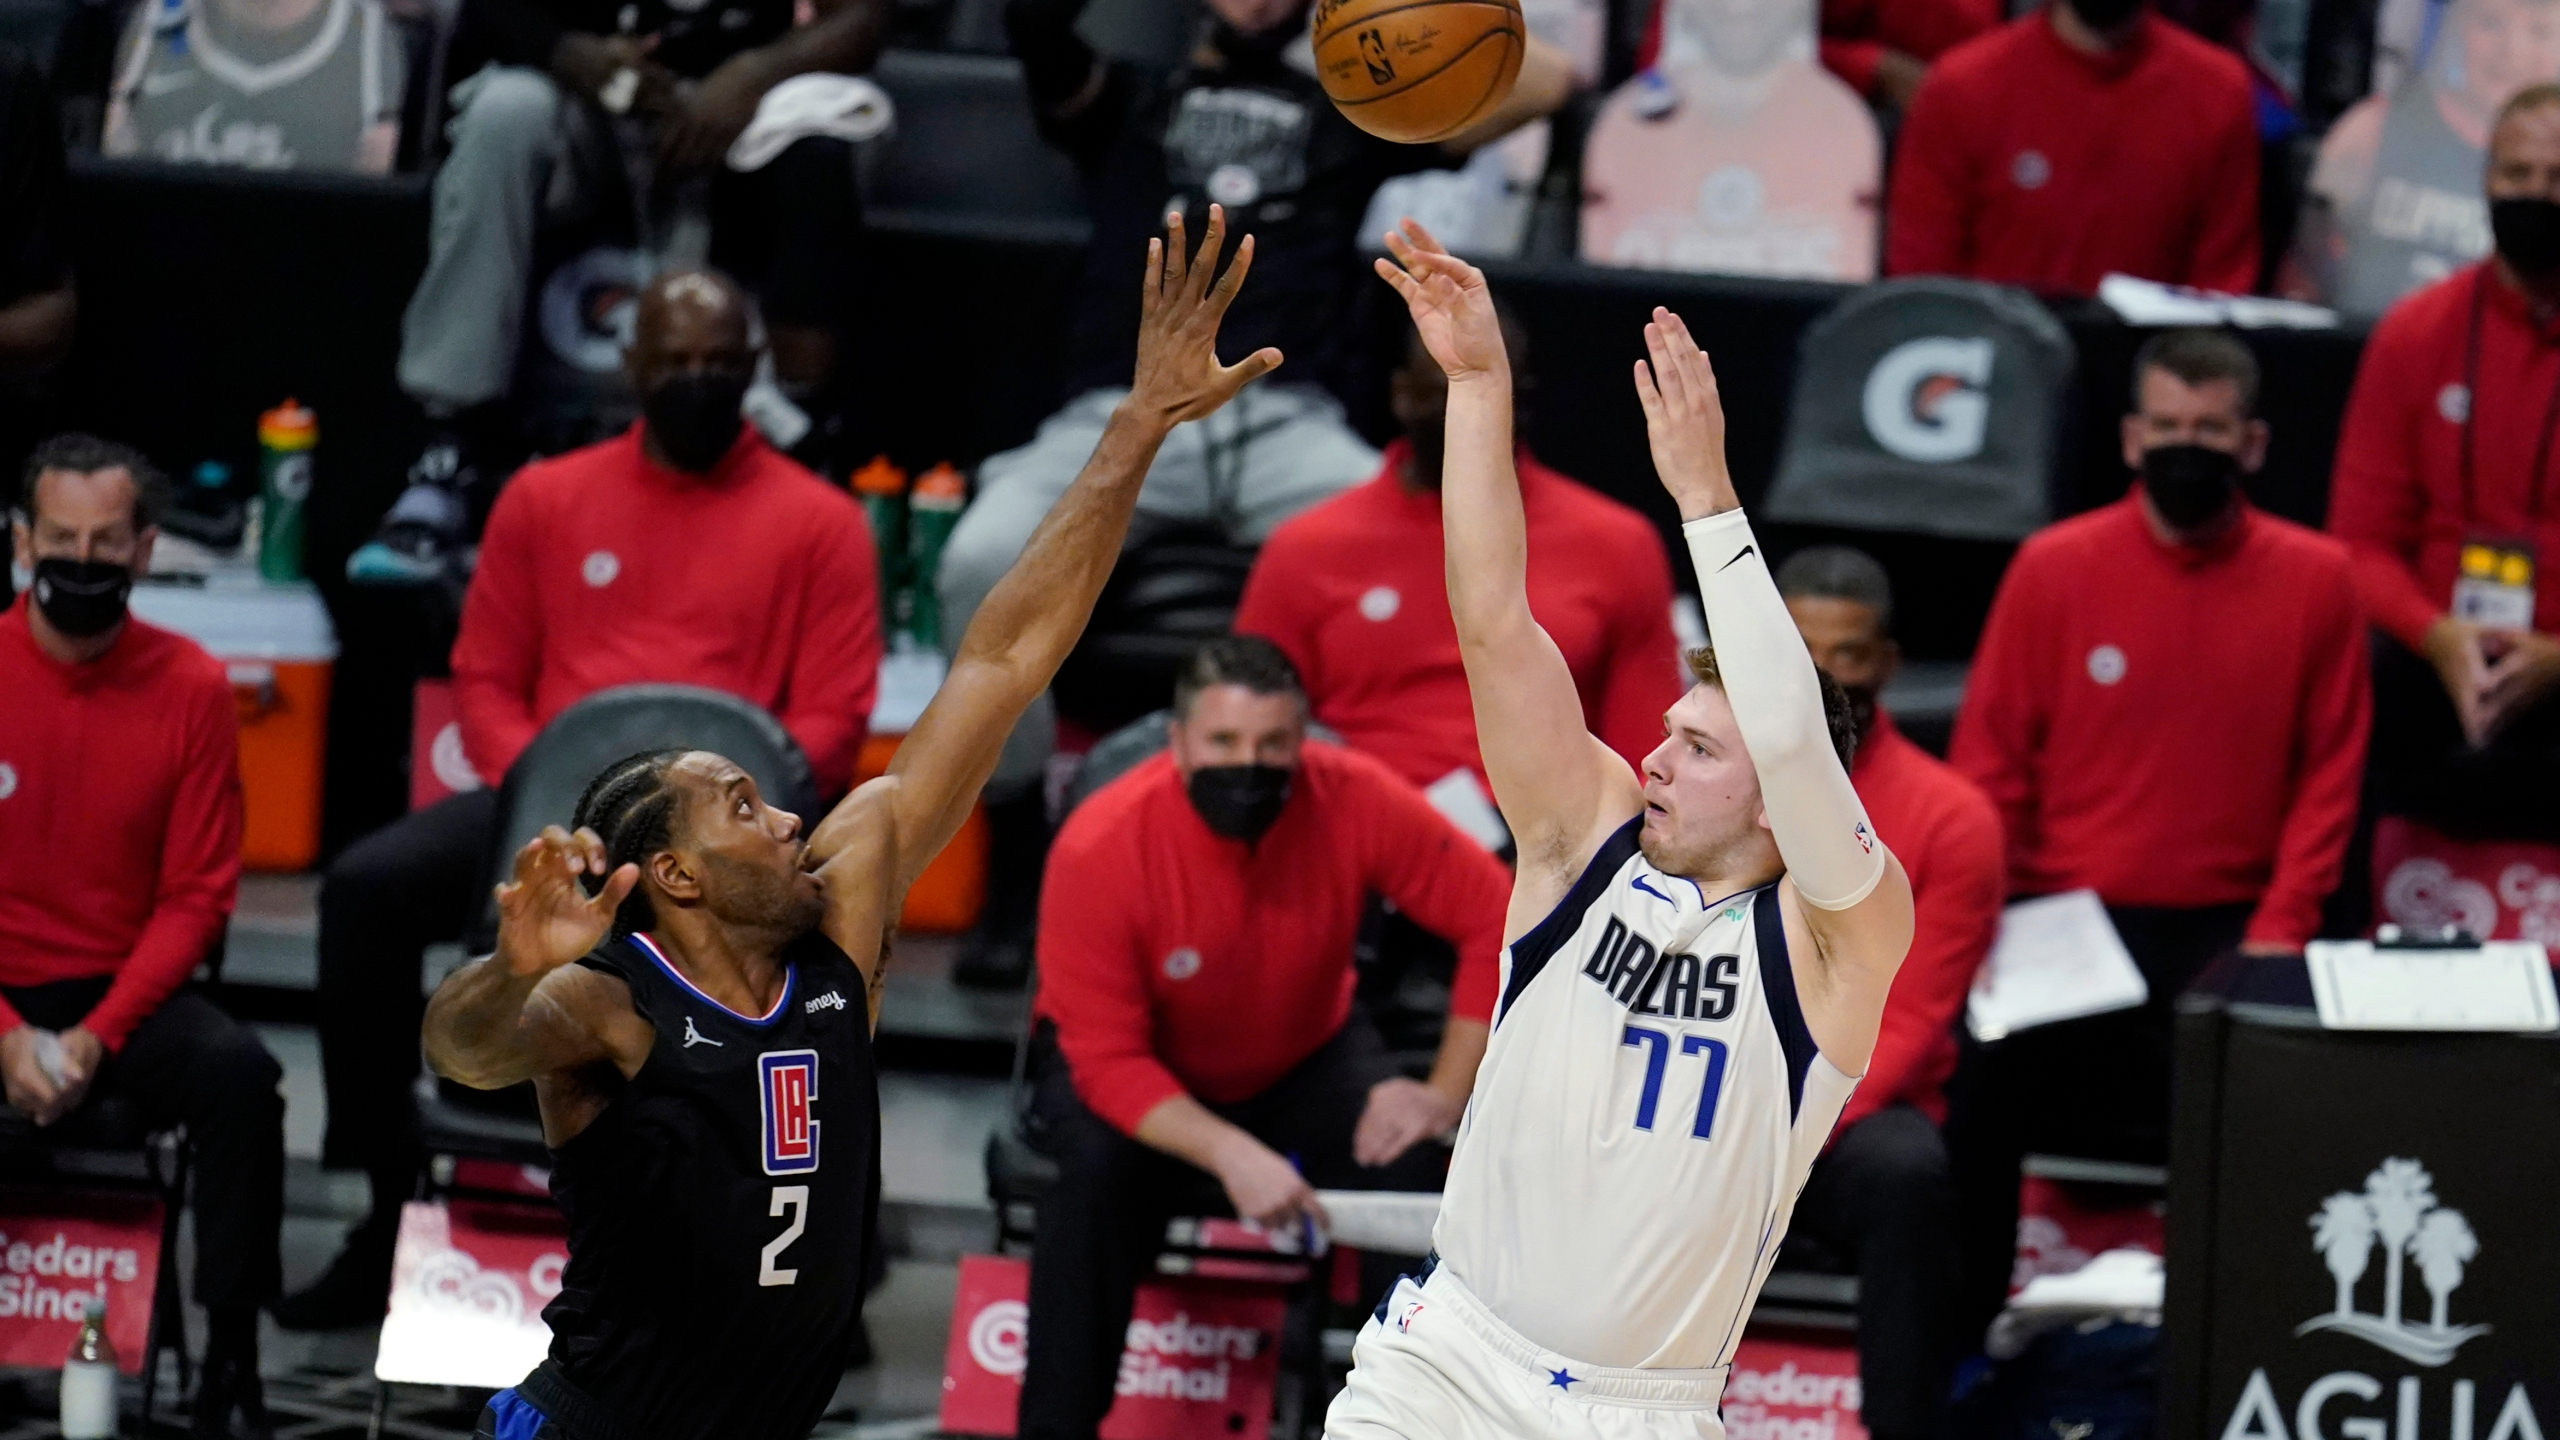 Dallas Mavericks guard Luka Doncic (77) scores over Los Angeles Clippers forward Kawhi Leonard (2) during the second half in Game 2 of an NBA basketball first-round playoff series on May 25, 2021, in Los Angeles. (AP Photo/Marcio Jose Sanchez)